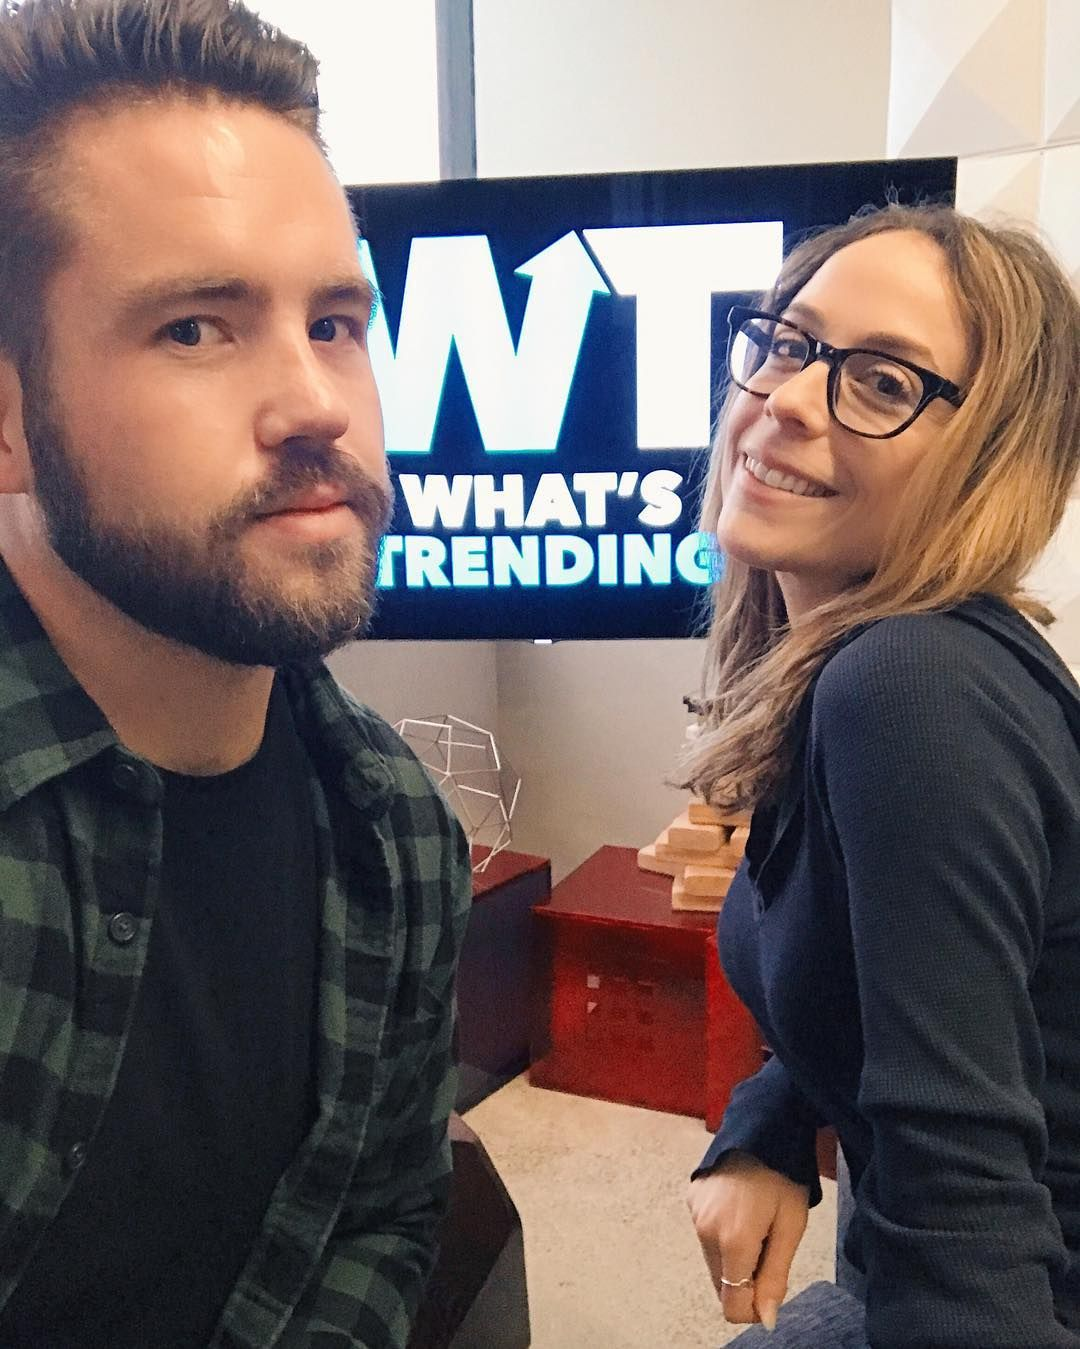 Planning things with this one. @shiralazar @whatstrending #friends #digital #teaminternet #whatstrending #ideas